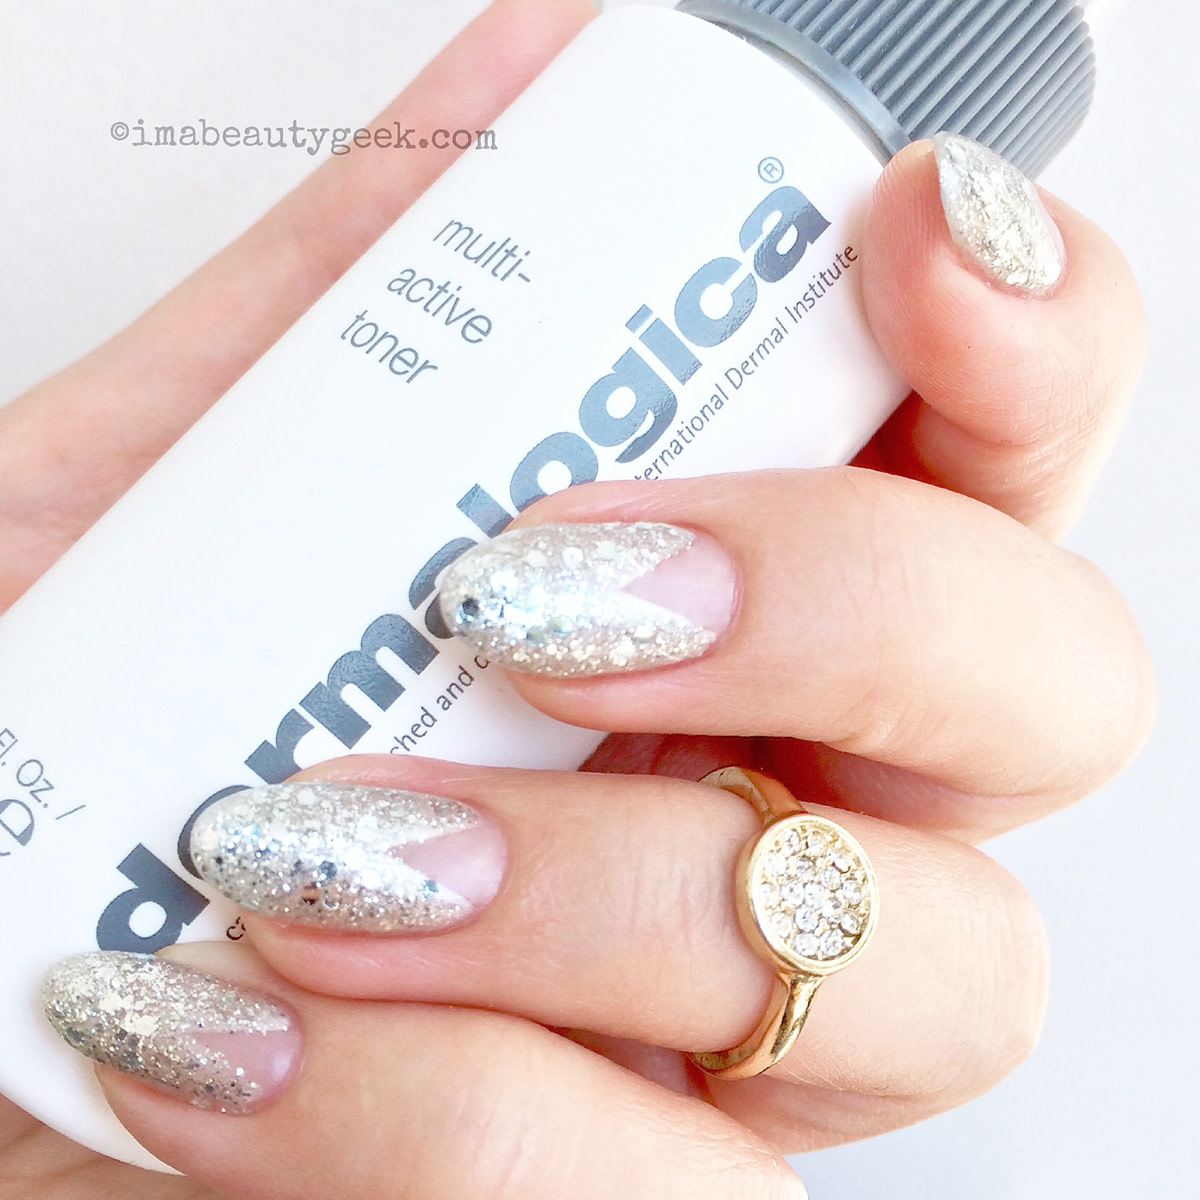 a grown-up glitter manicure or new pavé mani